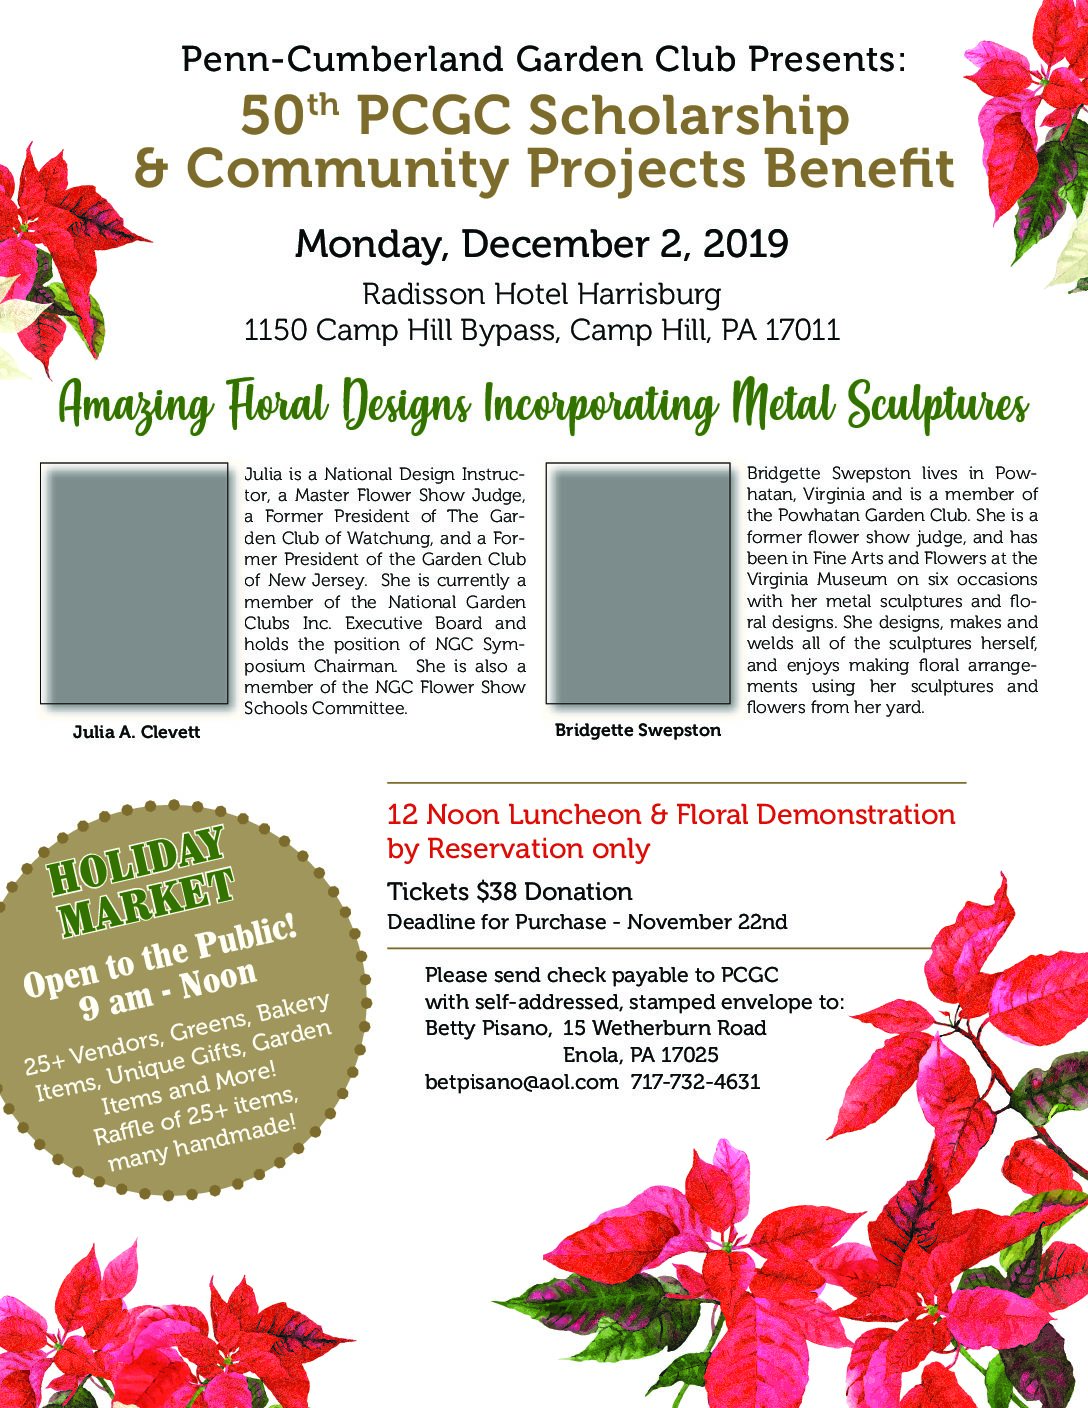 Pcgc Benefit Dec 2 2019 Penn Cumberland Garden Club